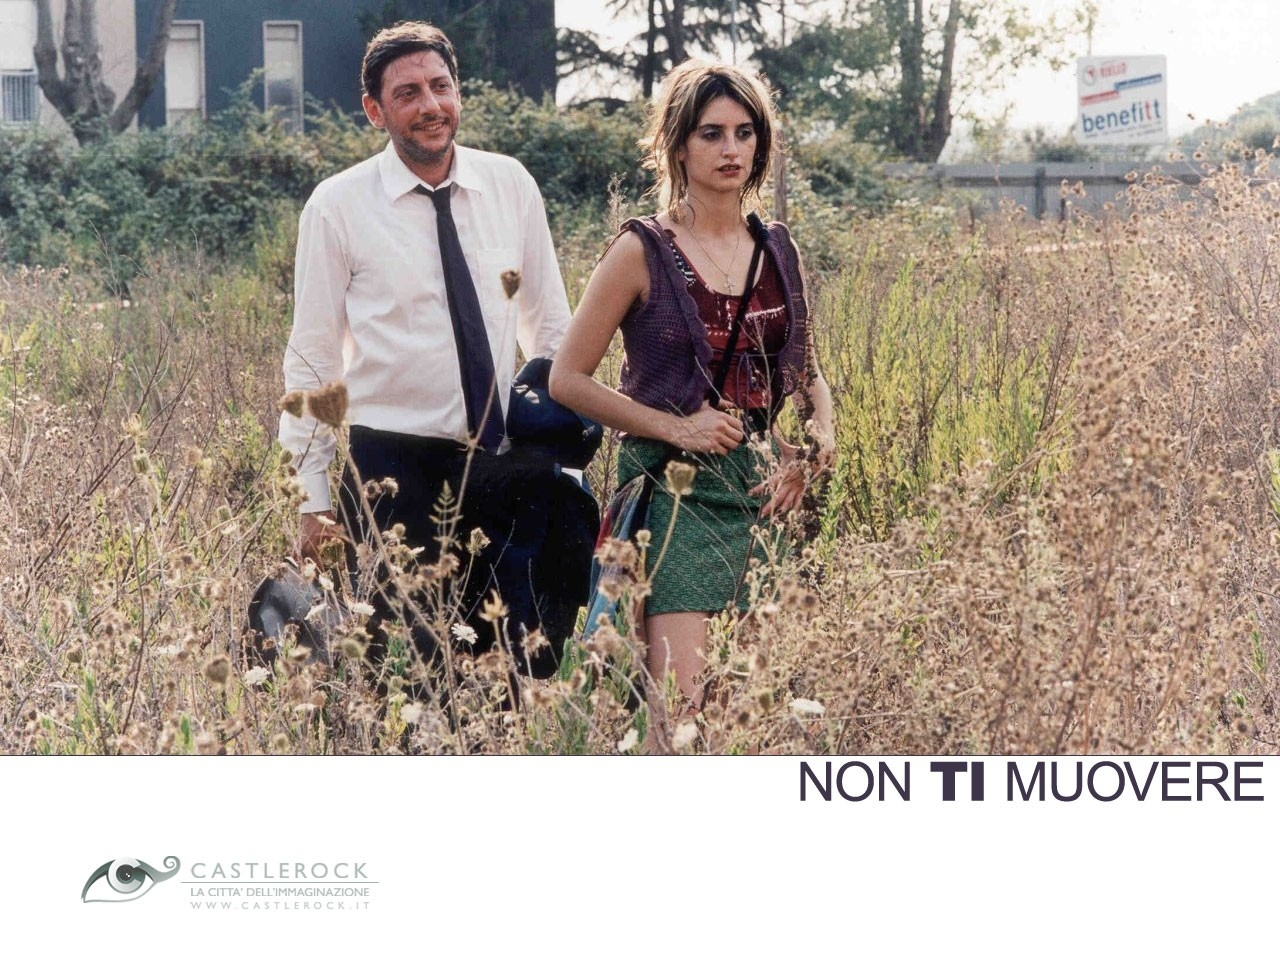 >Don't Move - Non Ti Muovere - One Hell of a Love Story